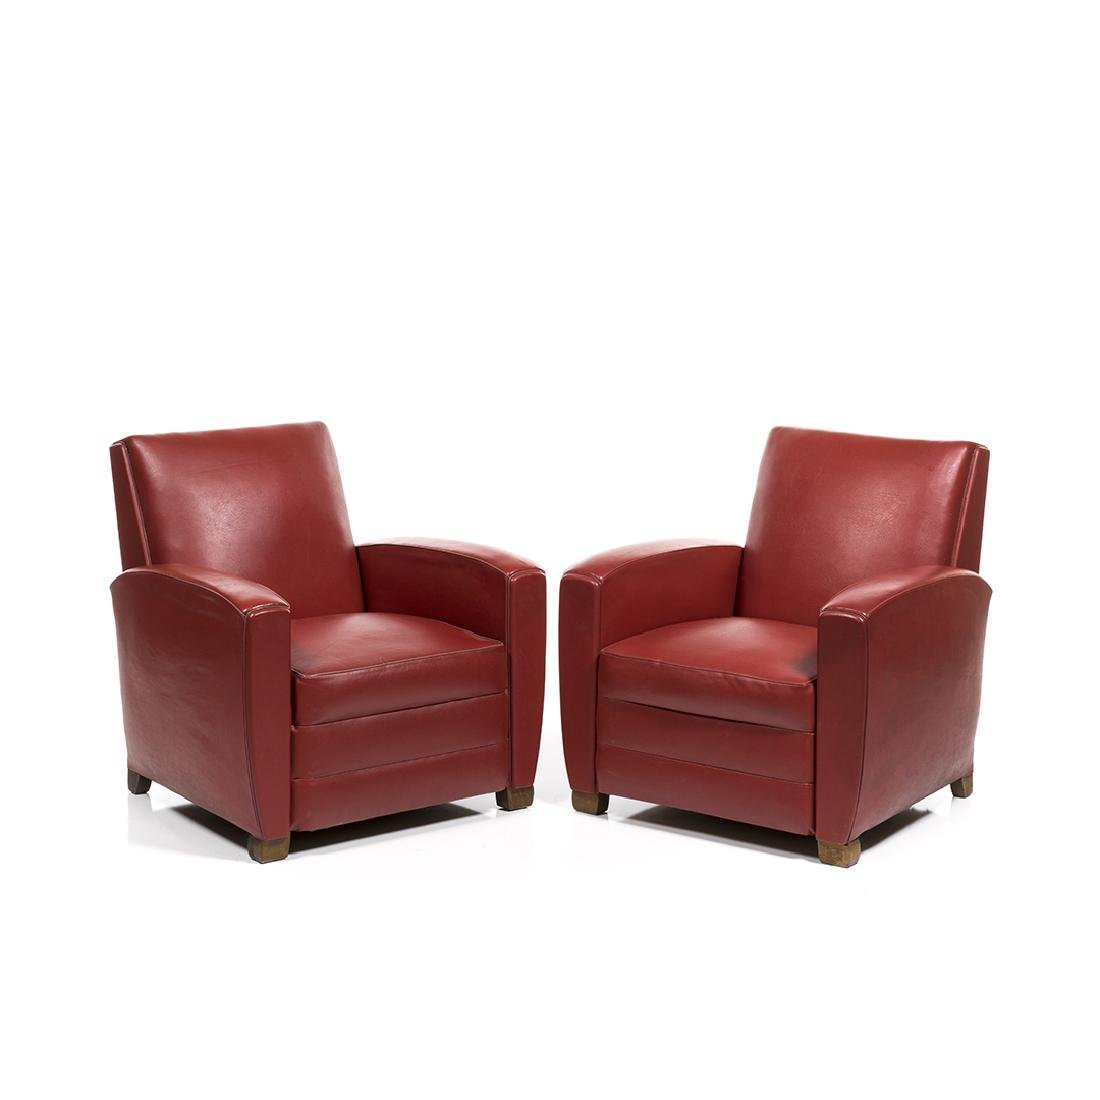 French Club Chairs